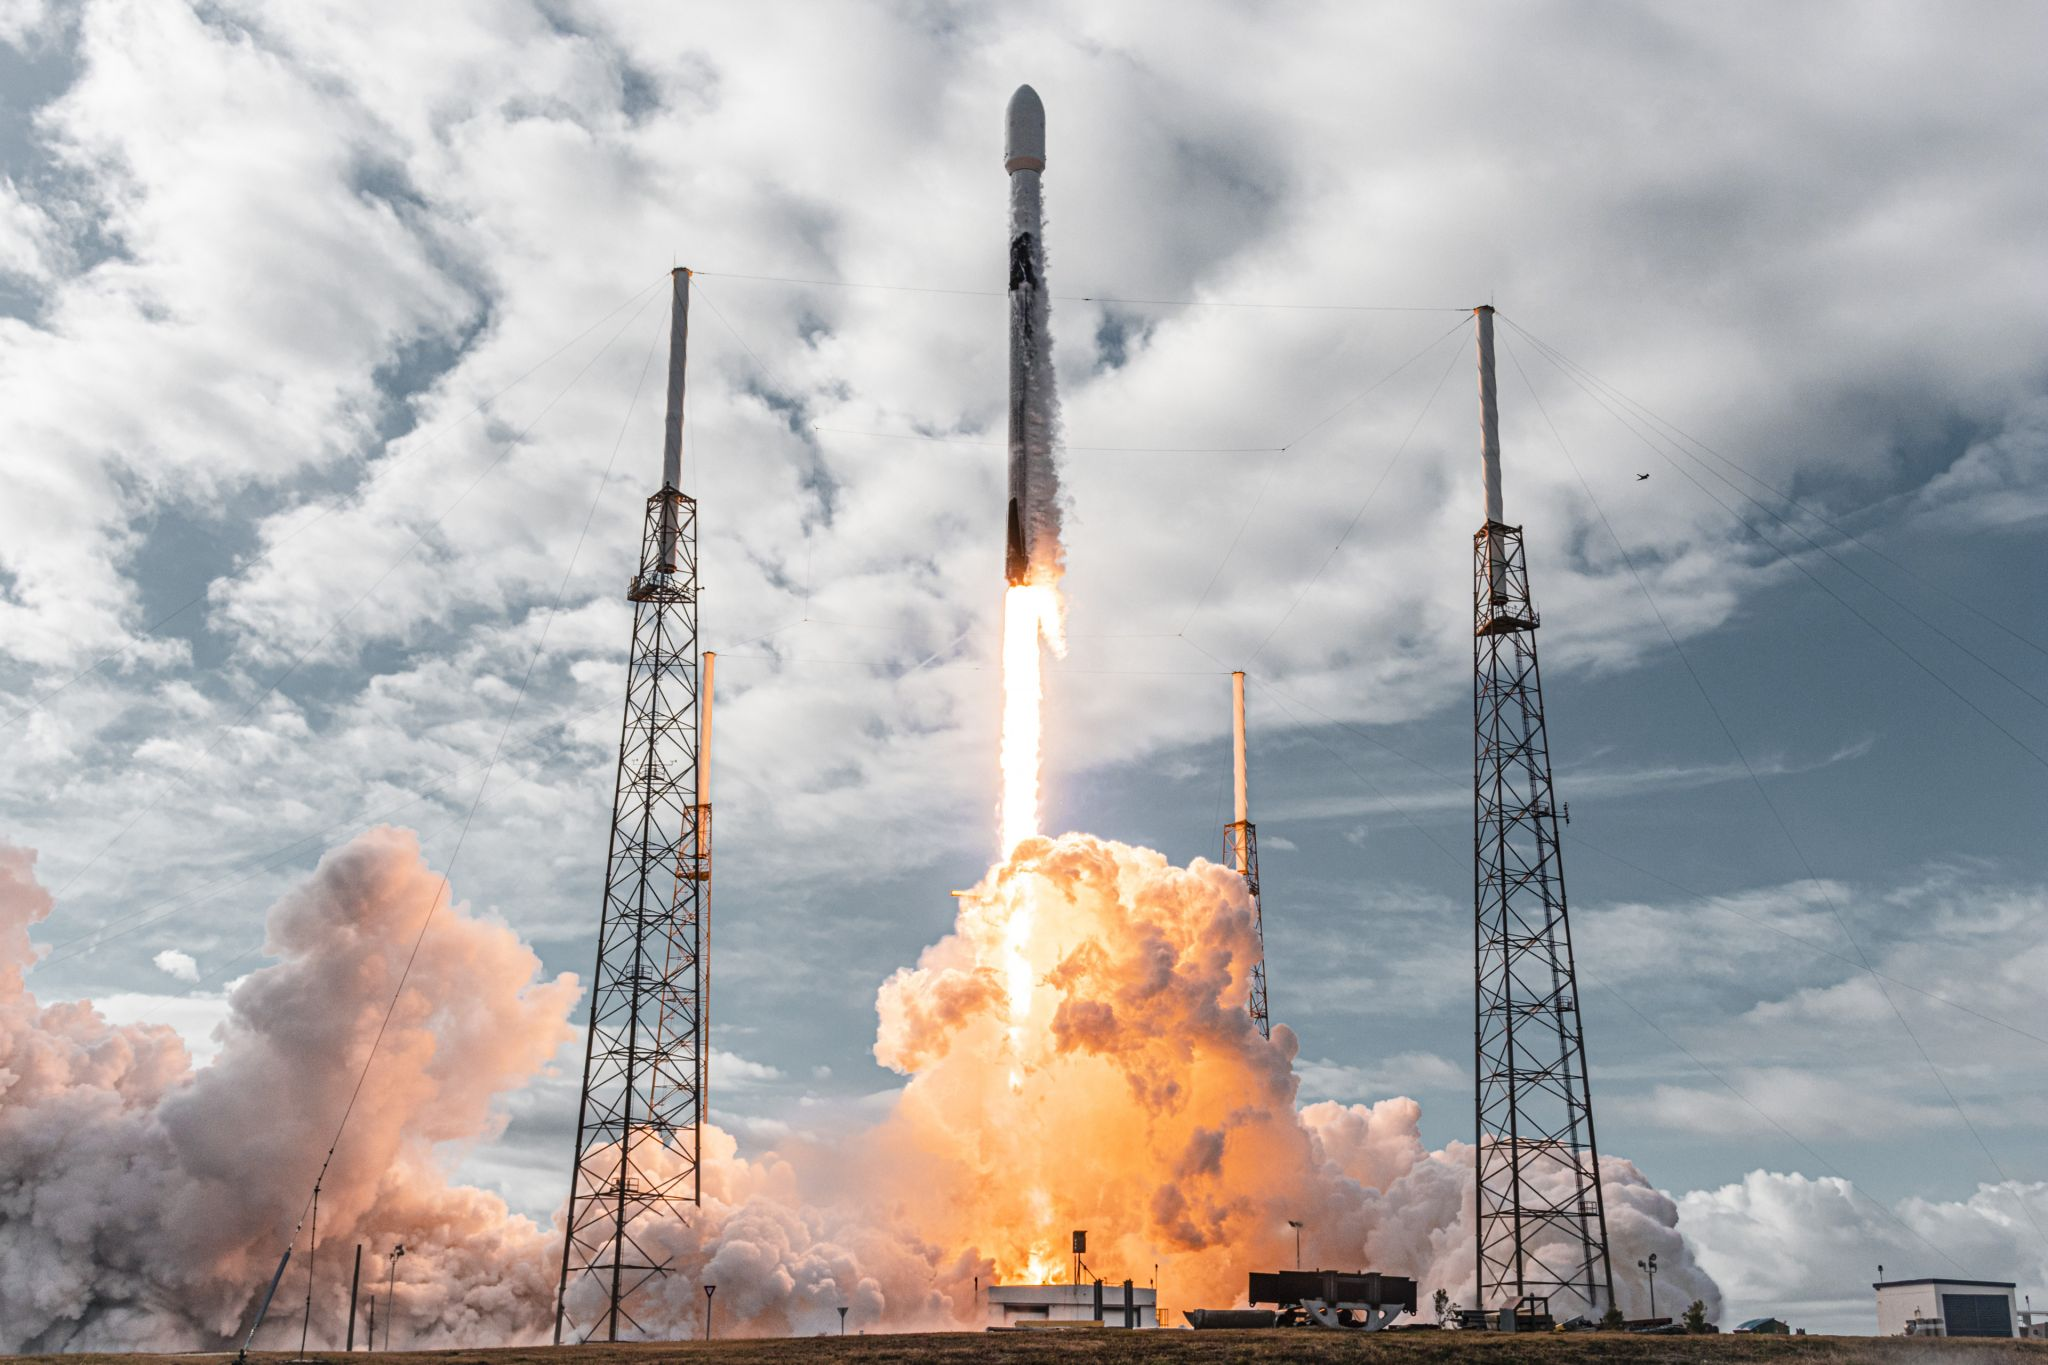 SpaceX deploys record 143 small spacecraft into orbit